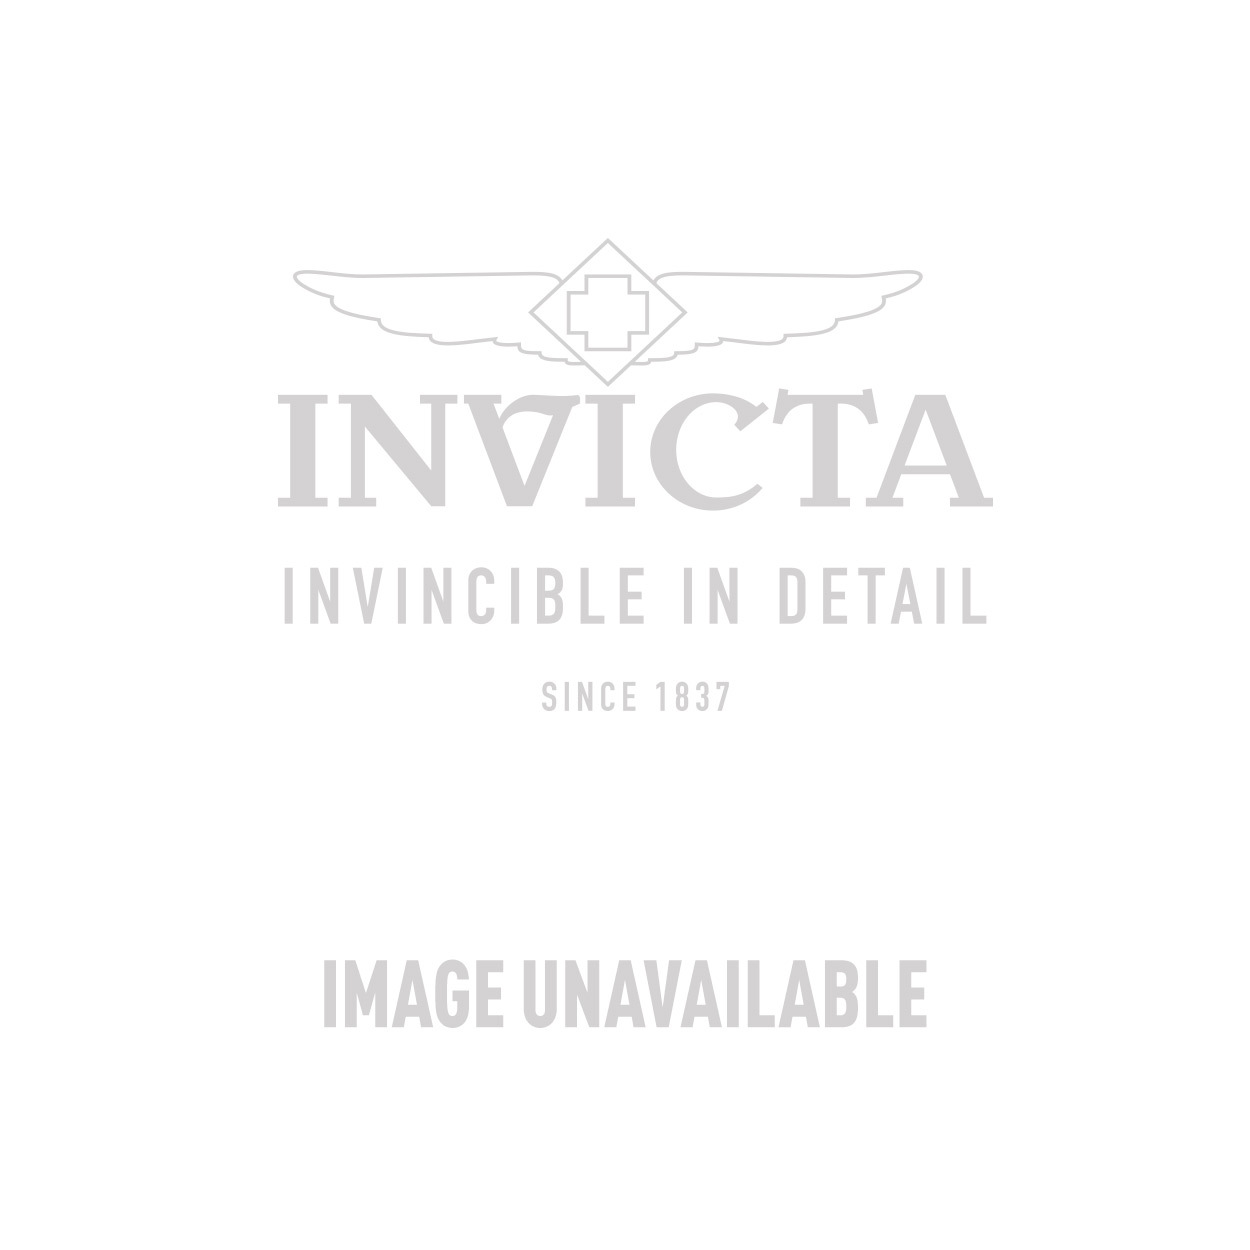 Invicta Specialty Swiss Movement Quartz Watch - Stainless Steel case Stainless Steel band - Model 9401